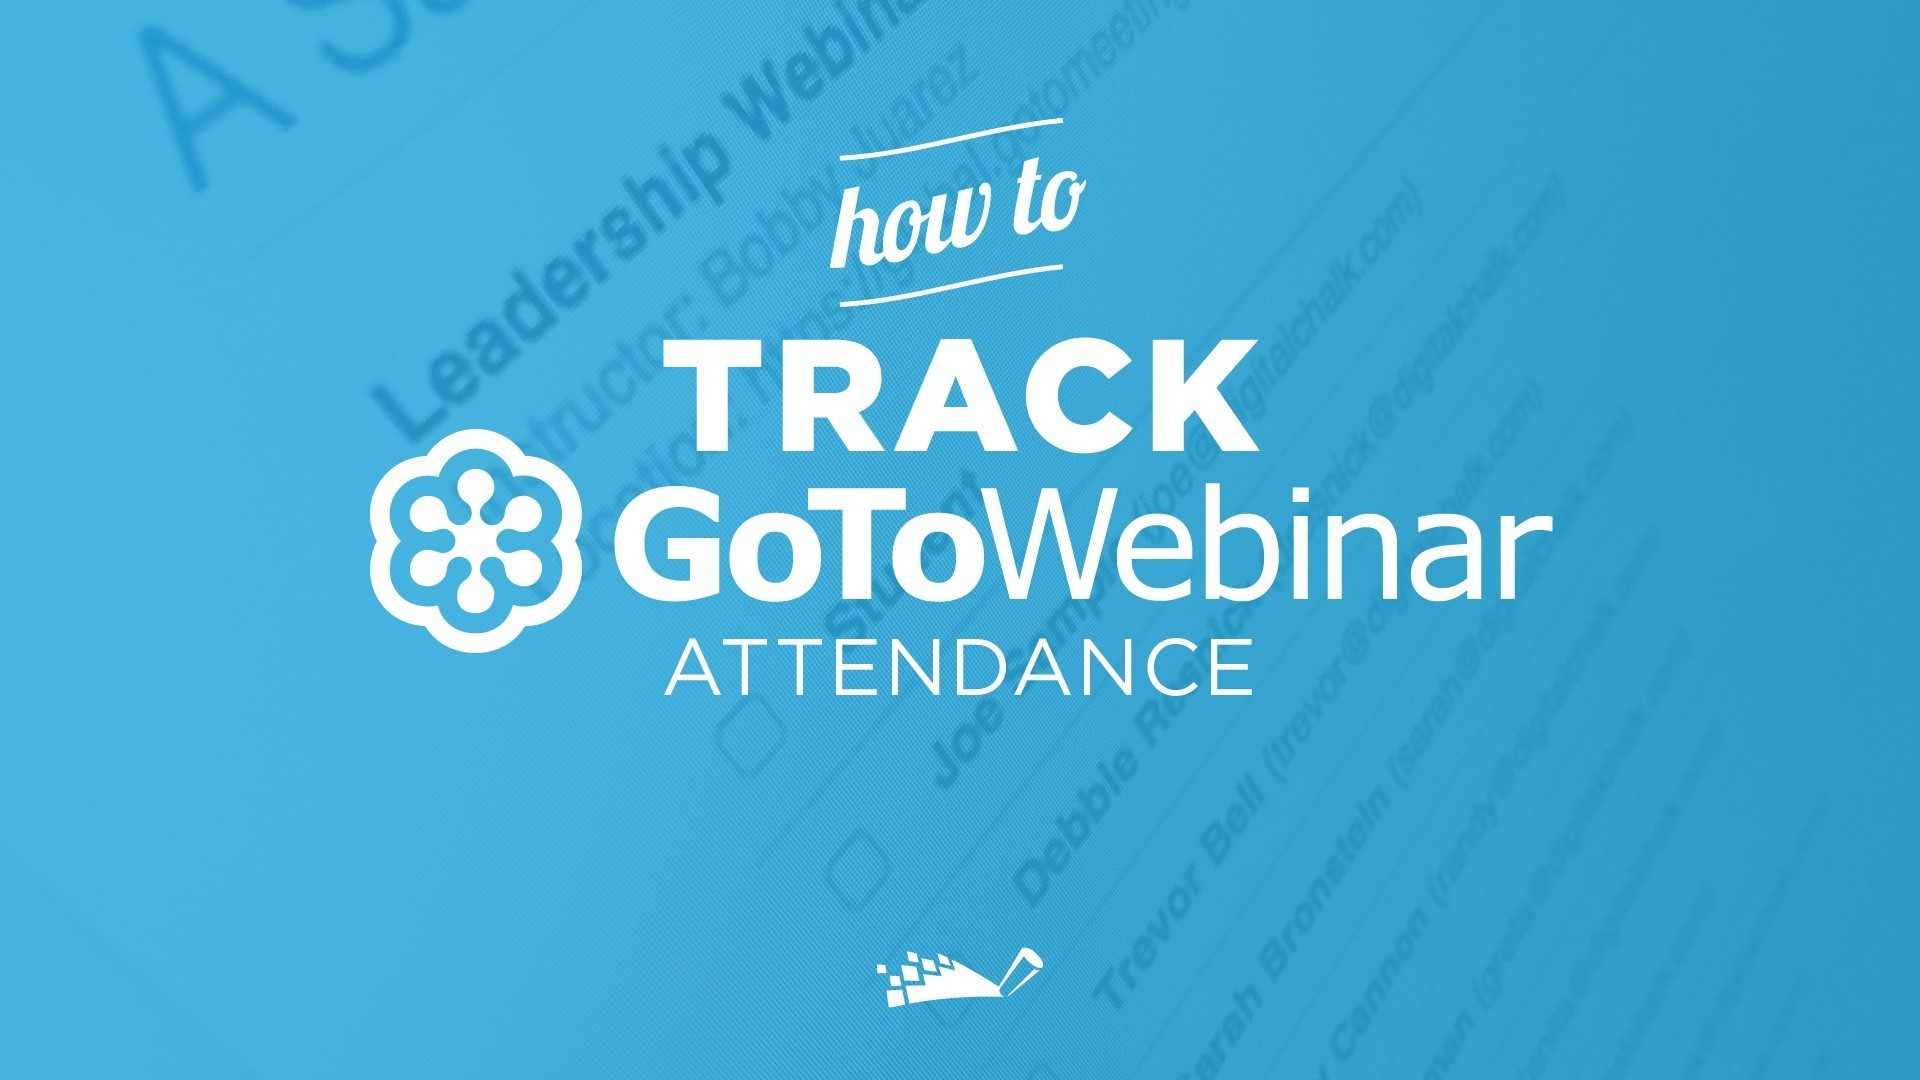 Track GoToWebinar Attendance on DigitalChalk | DigitalChalk Blog thumbnail